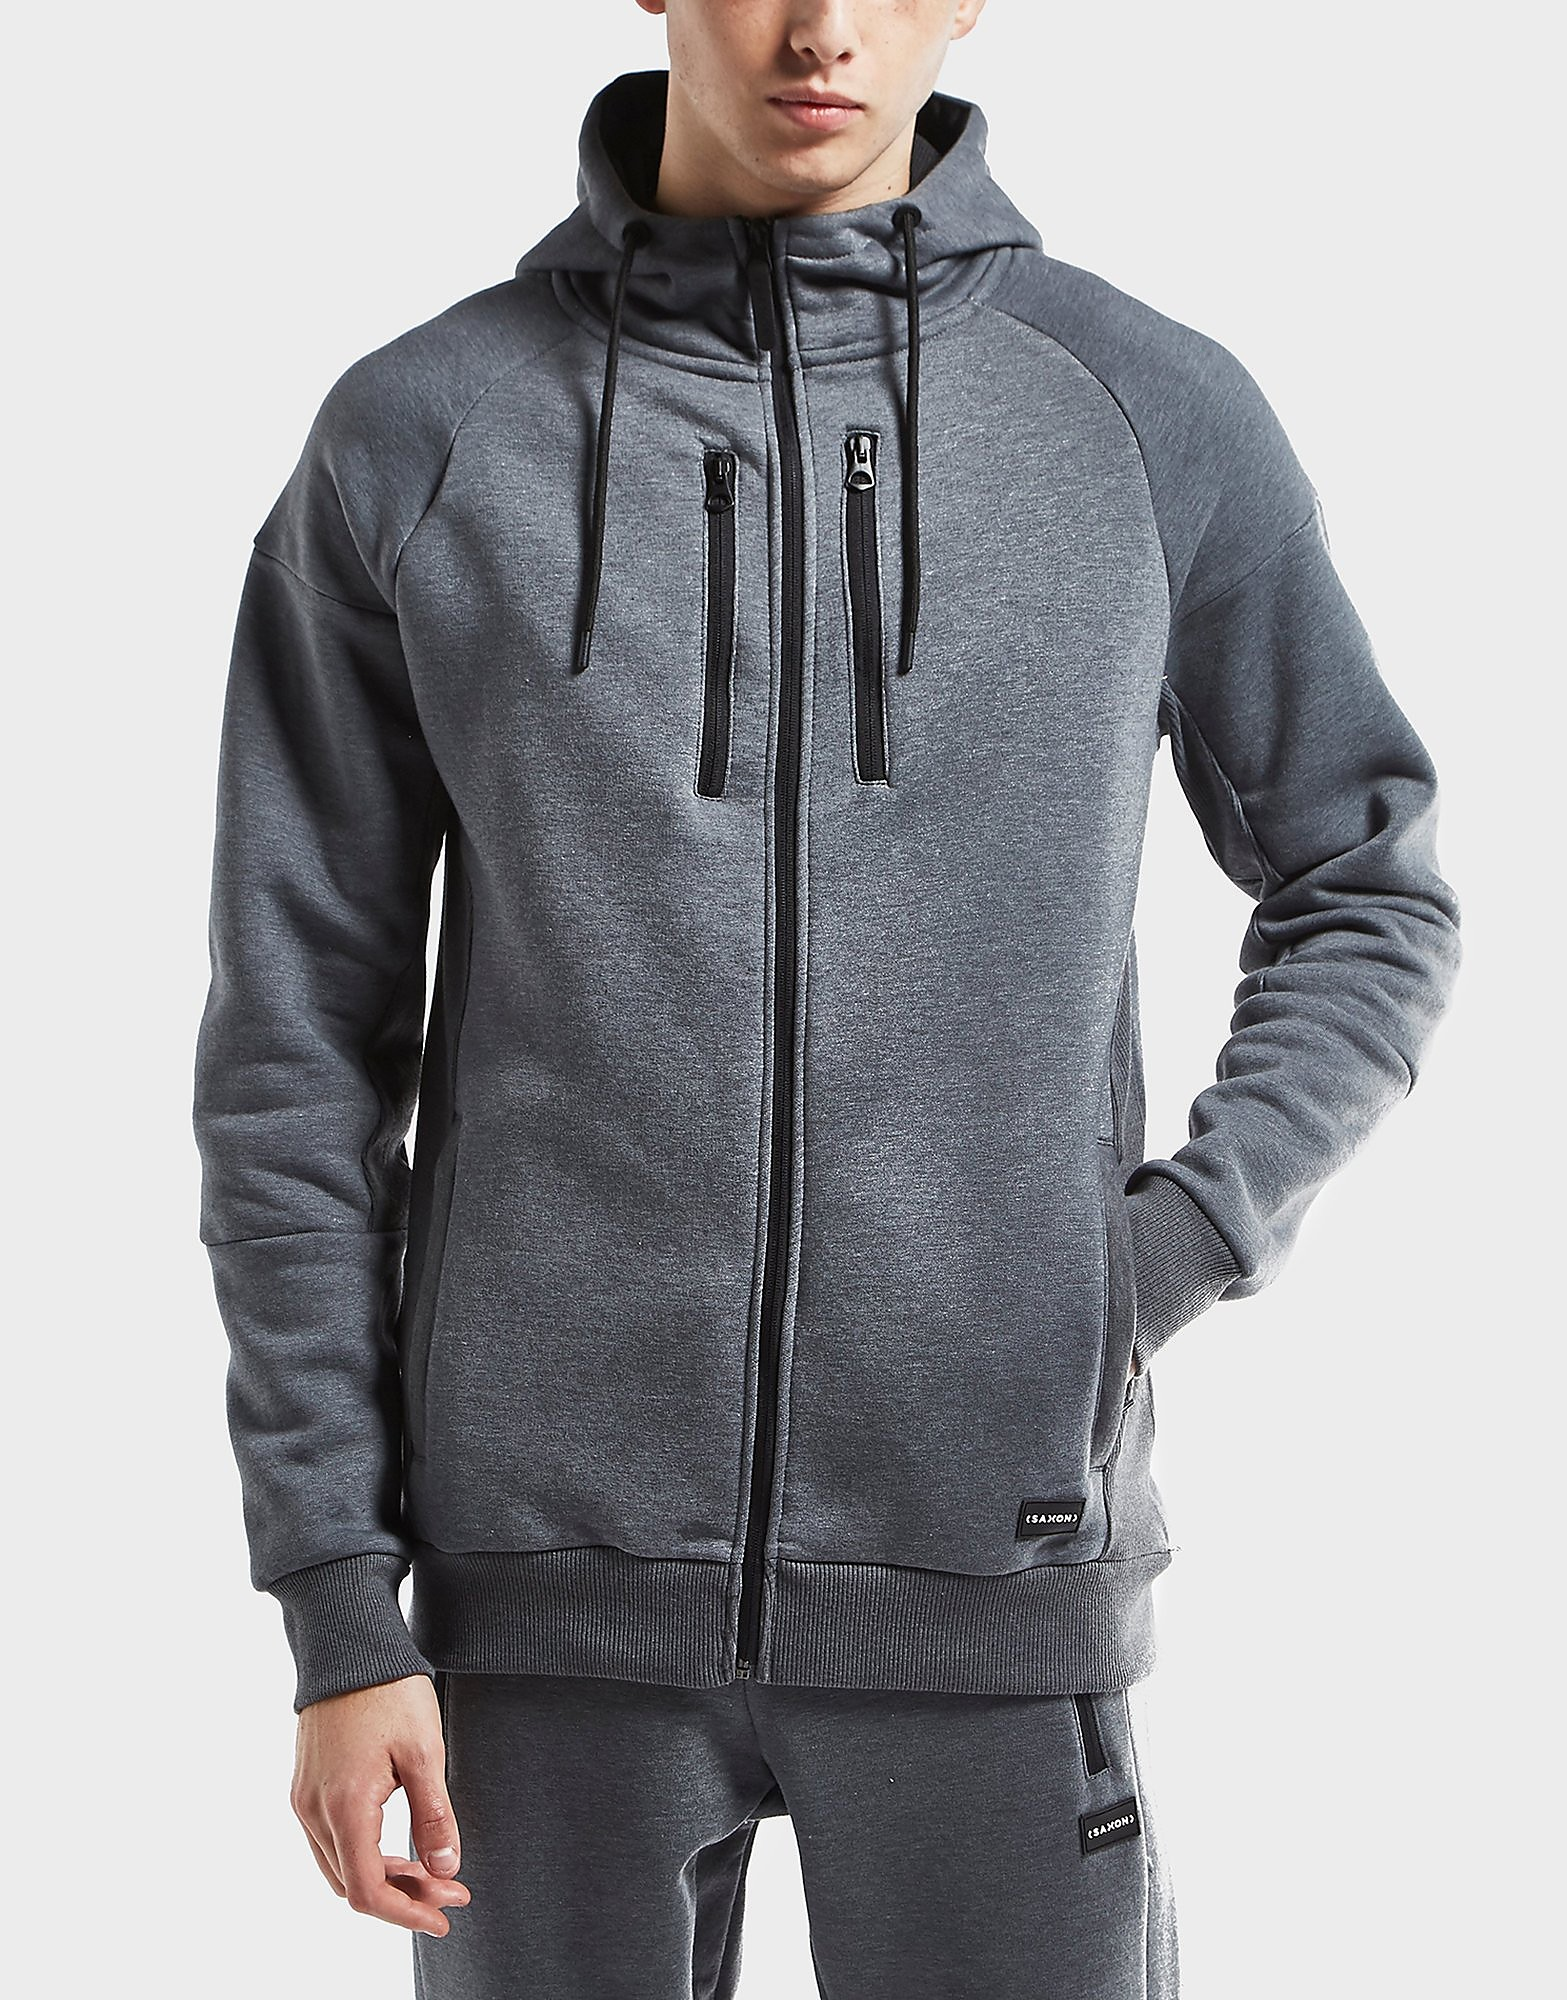 One True Saxon Whip Full Zip Hoody - Exclusive